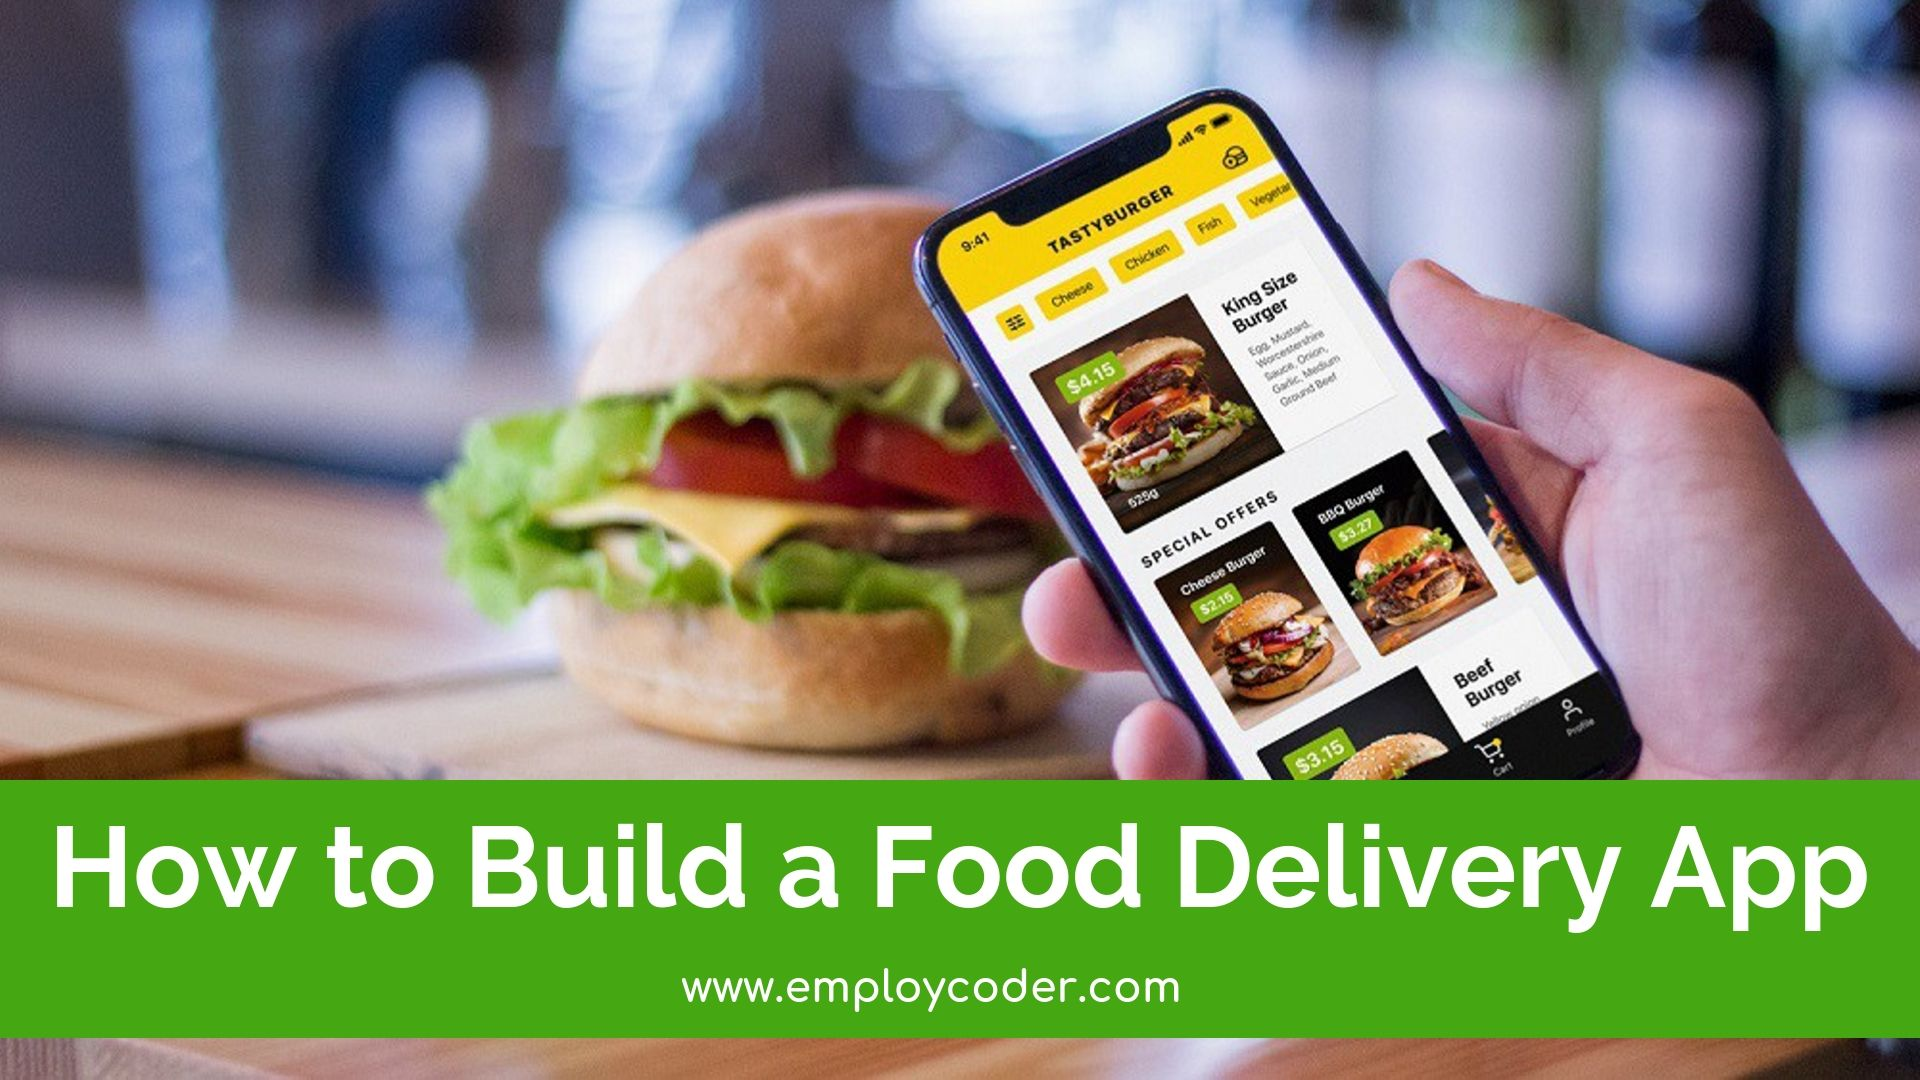 How to Build a Food Delivery App?